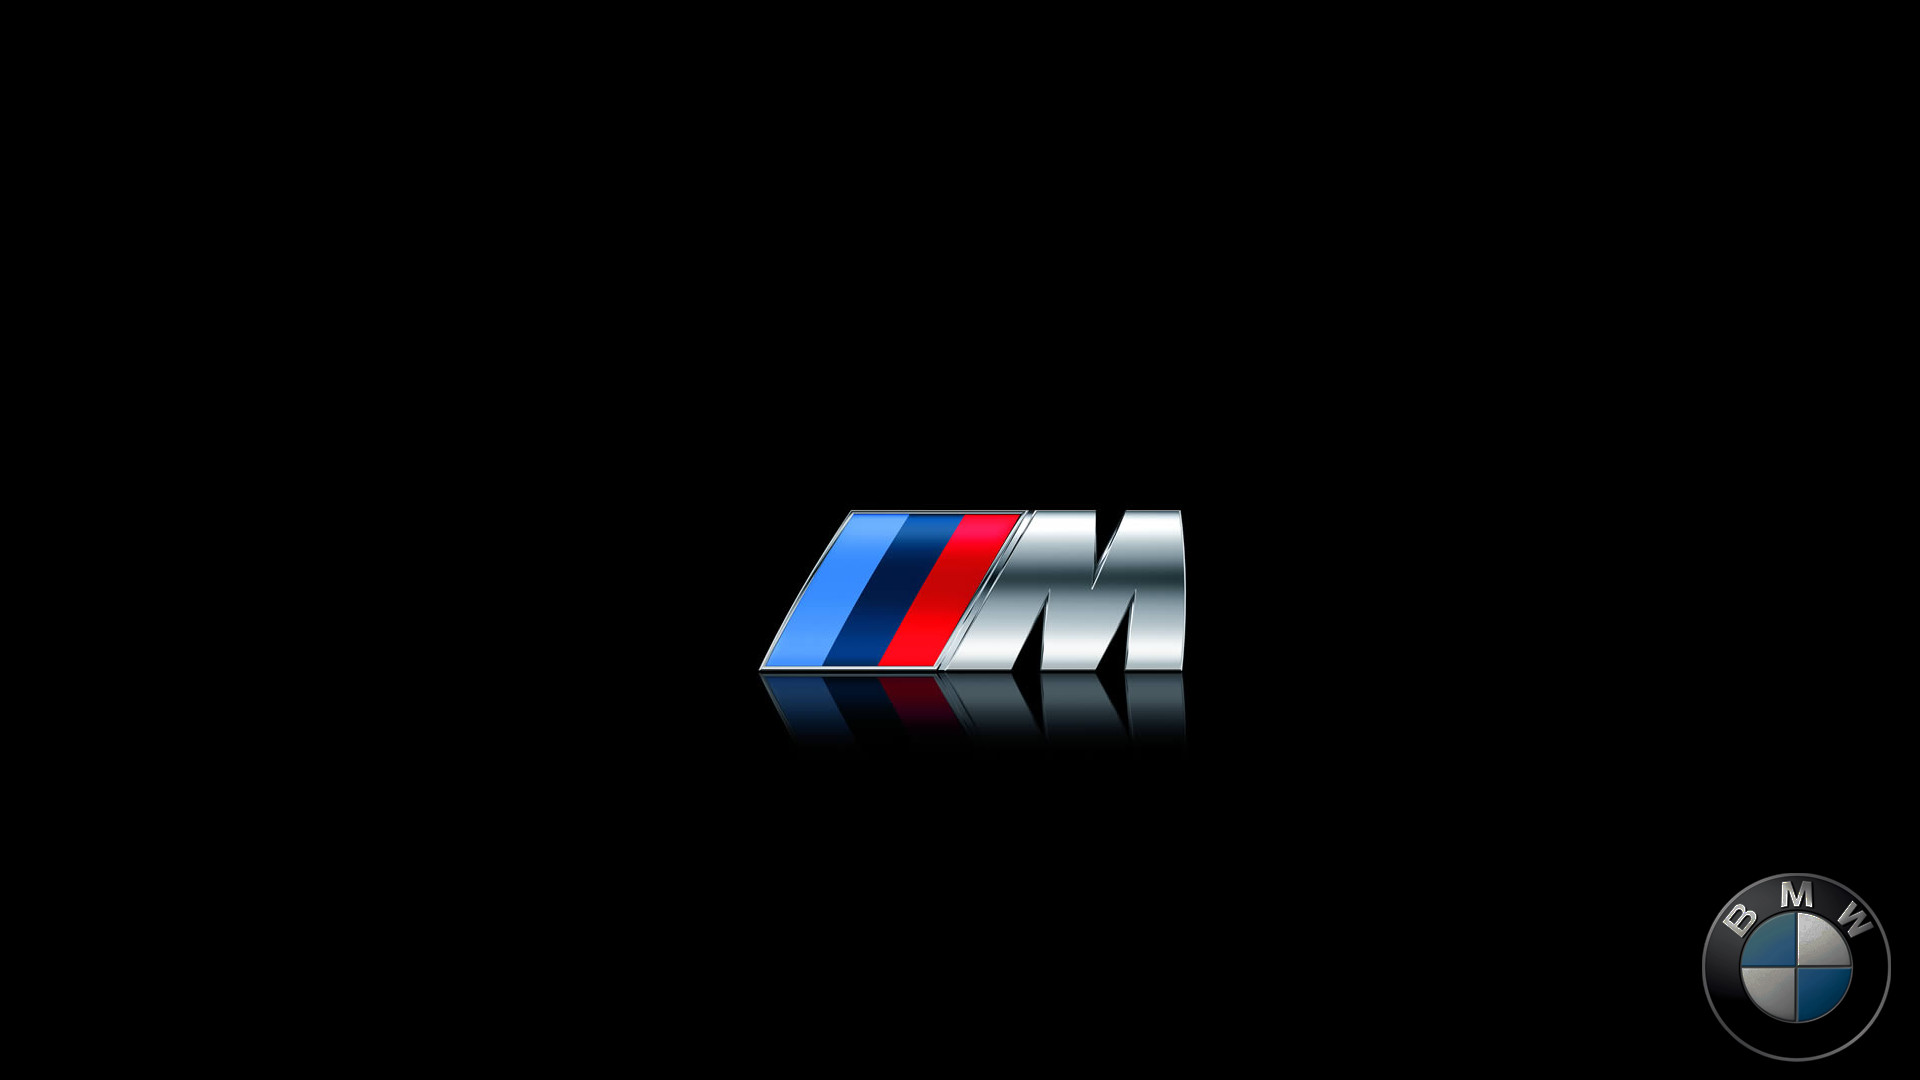 Bmw m hd wallpaper 57 images for Where to get wallpaper